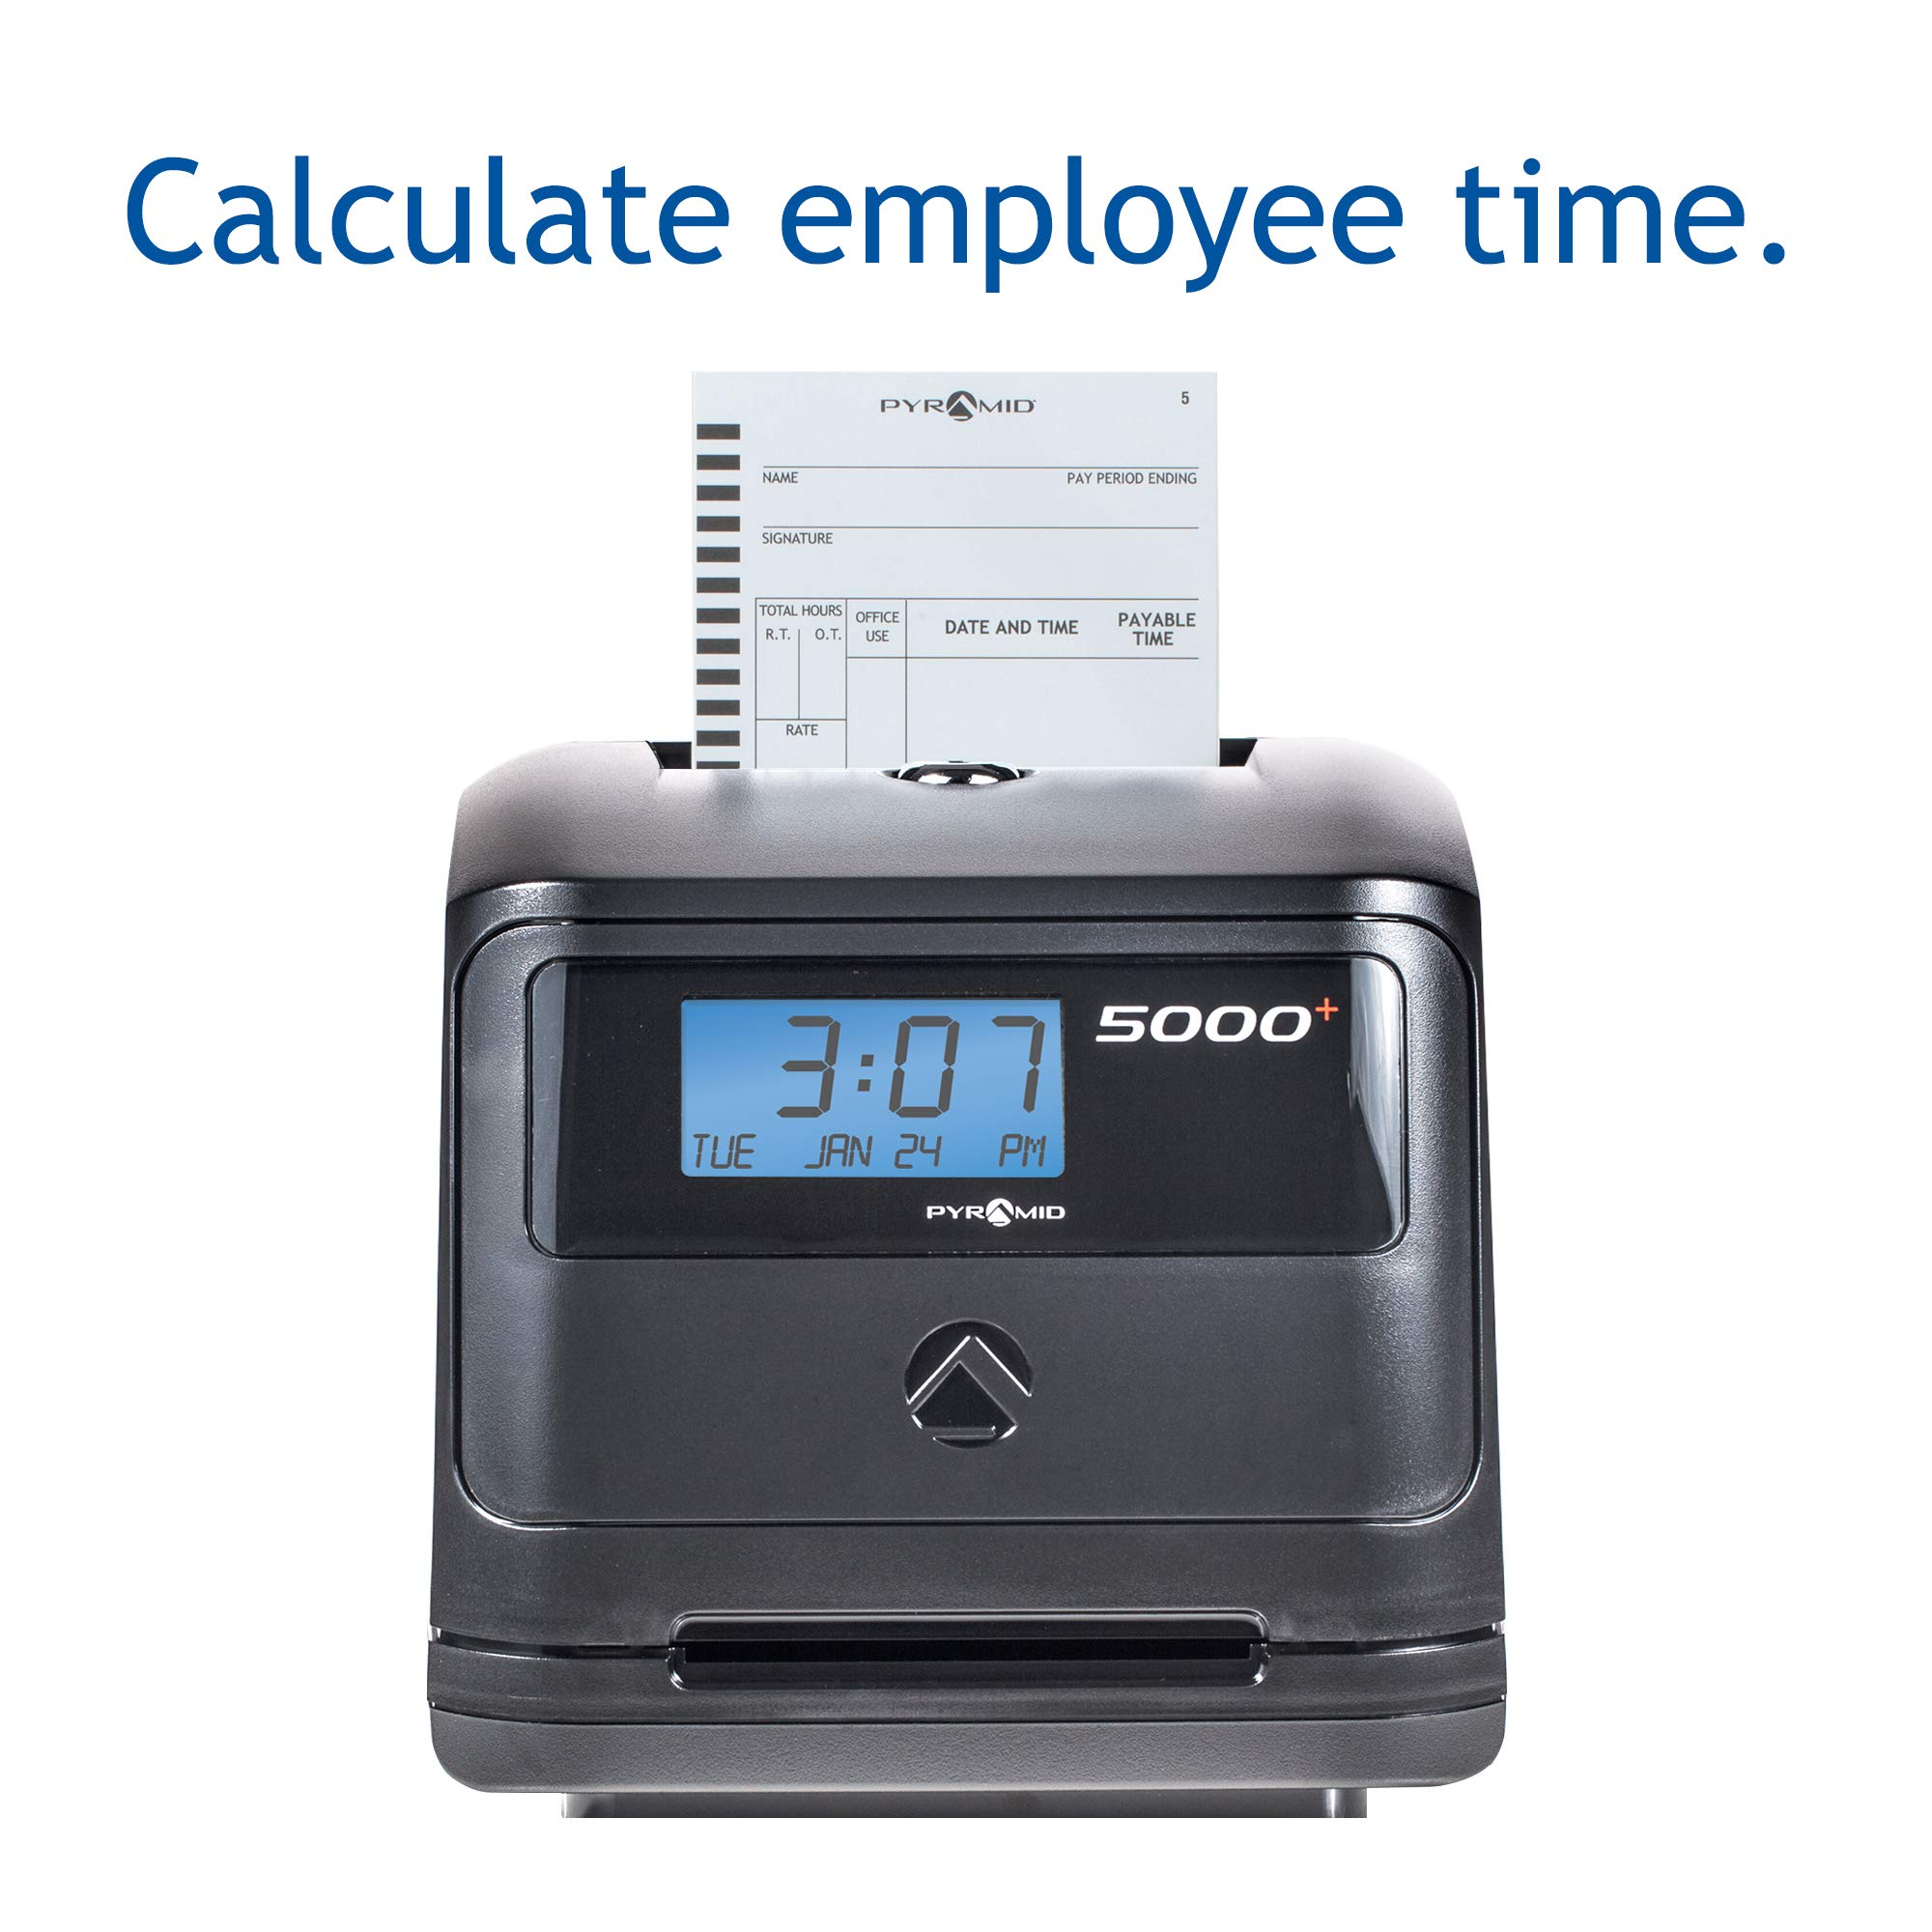 Pyramid 5000 Auto Totaling Time Clock, 100 Employees - Made in USA by Pyramid Time Systems (Image #2)